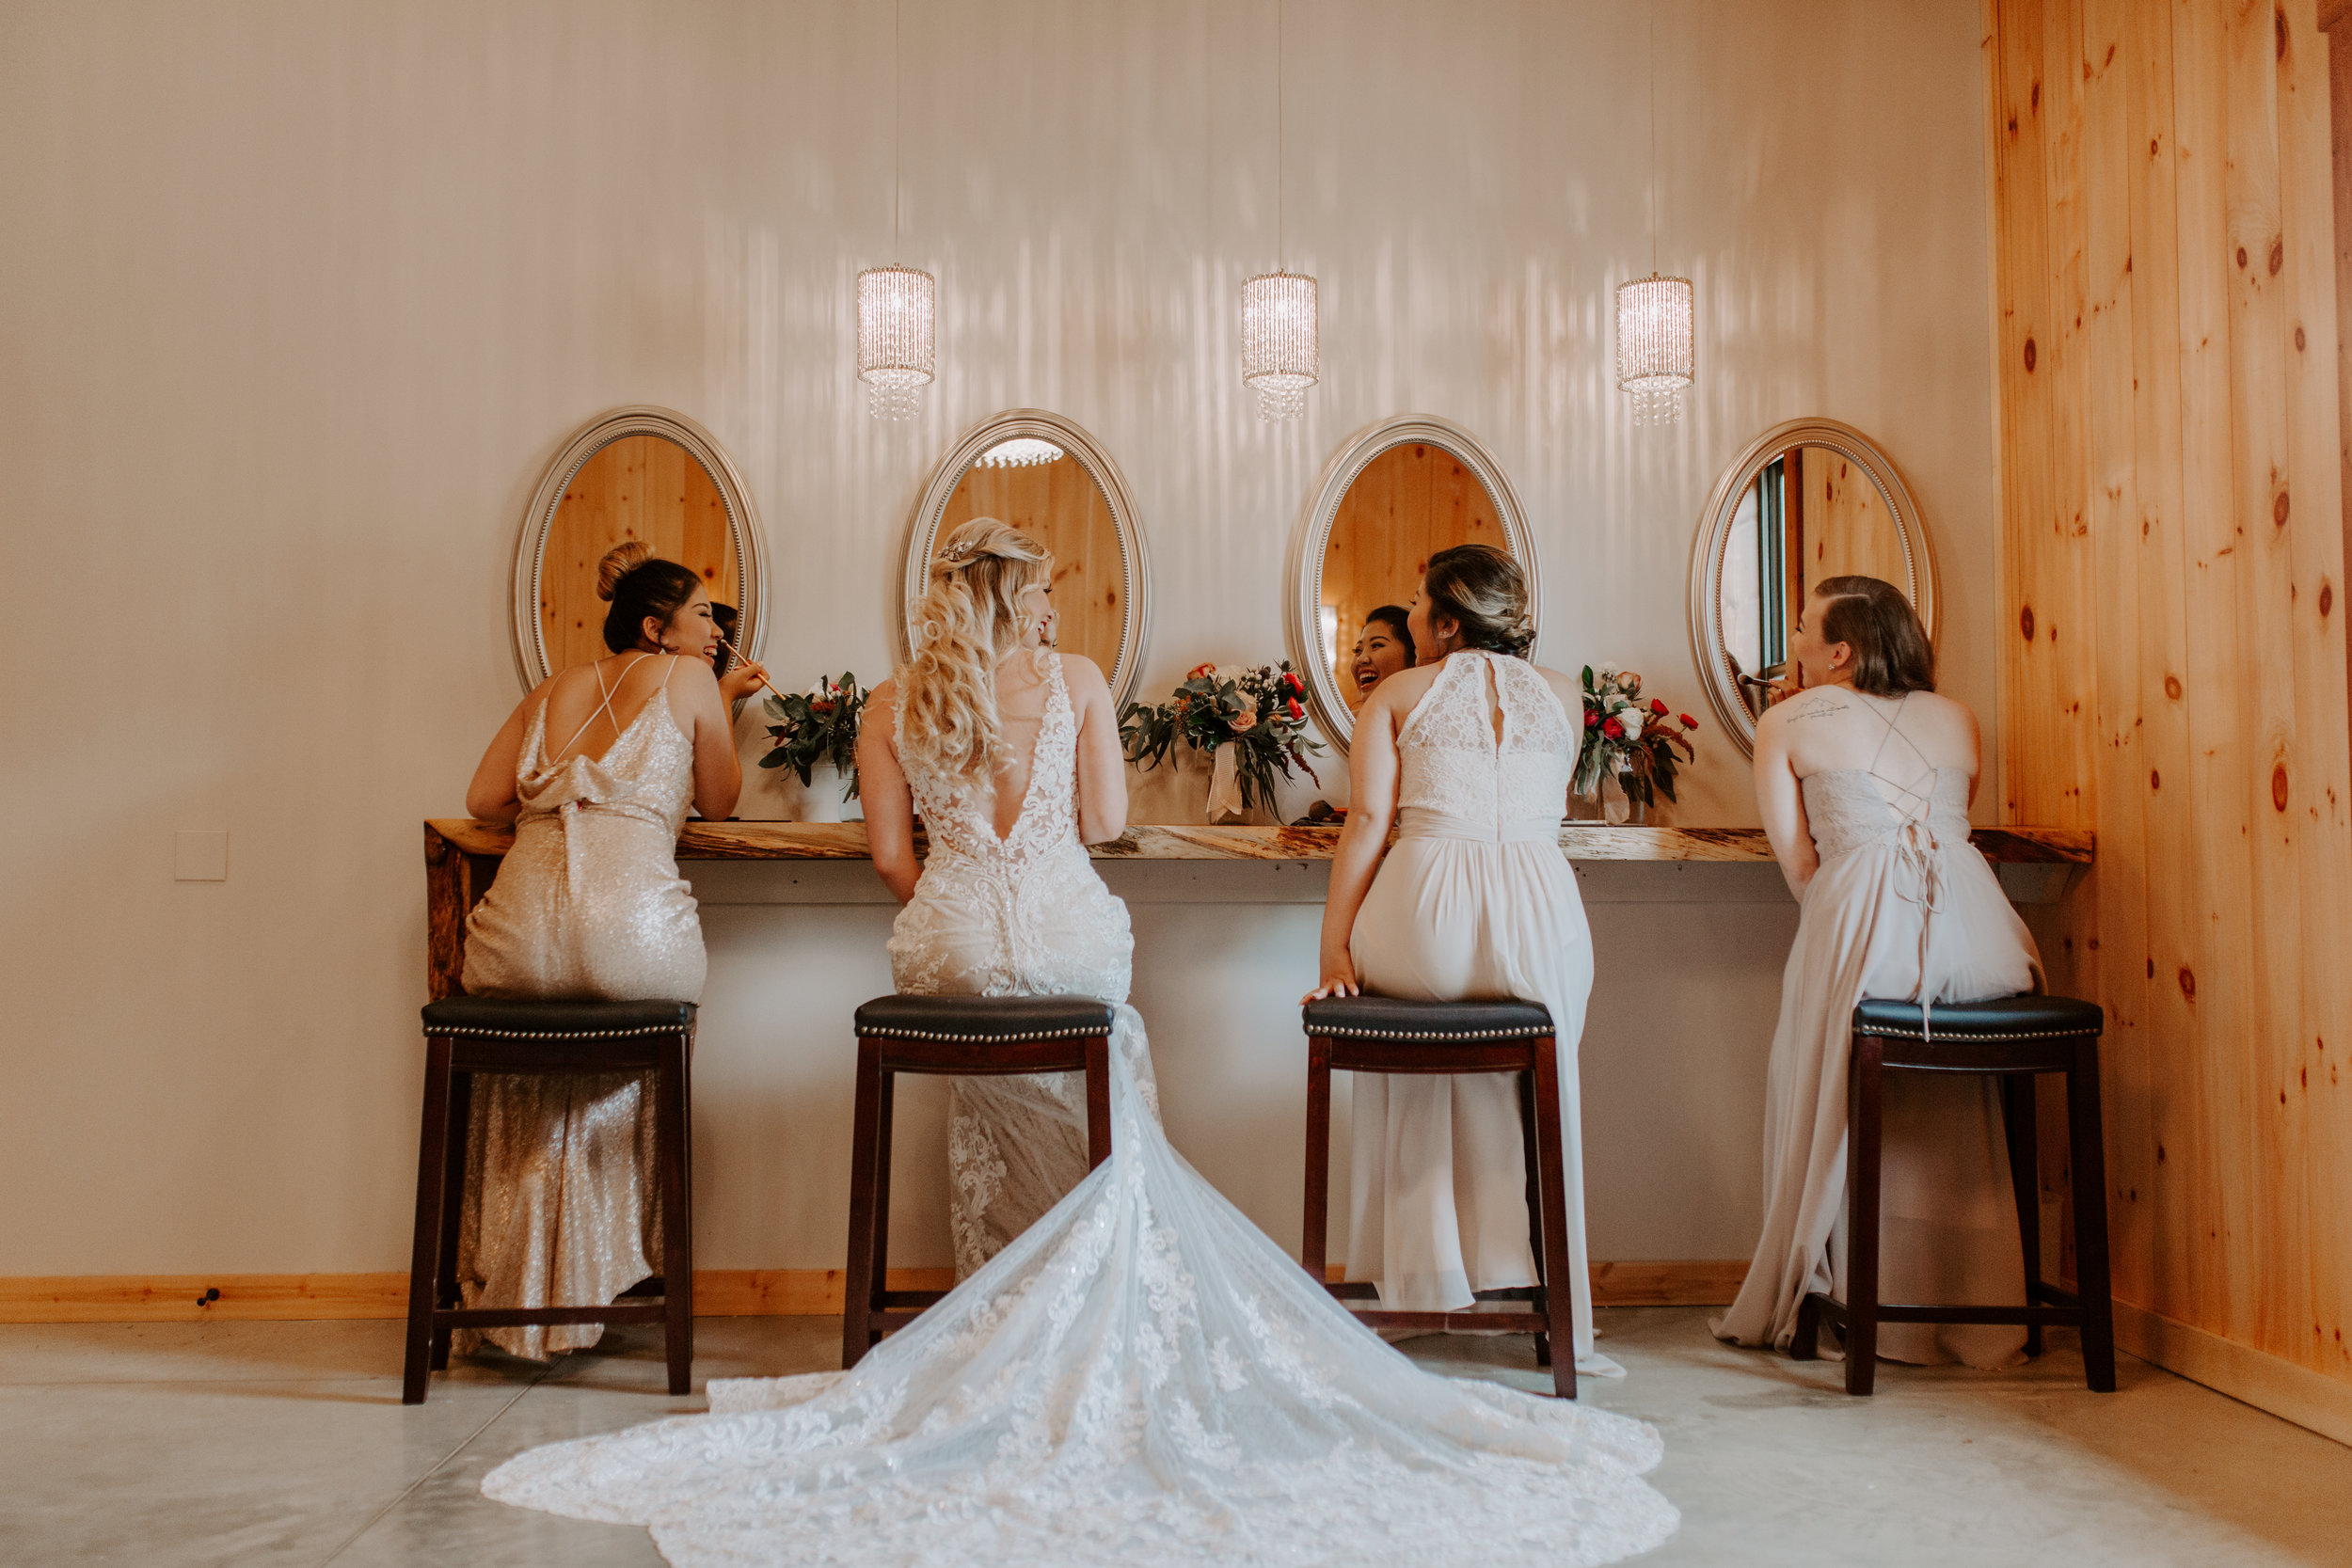 bride and bridesmaids getting ready in bridal suite , putting on makeup, long train of wedding dress is seen with lace and decorative trim, girls looking in the mirror and getting ready for wedding